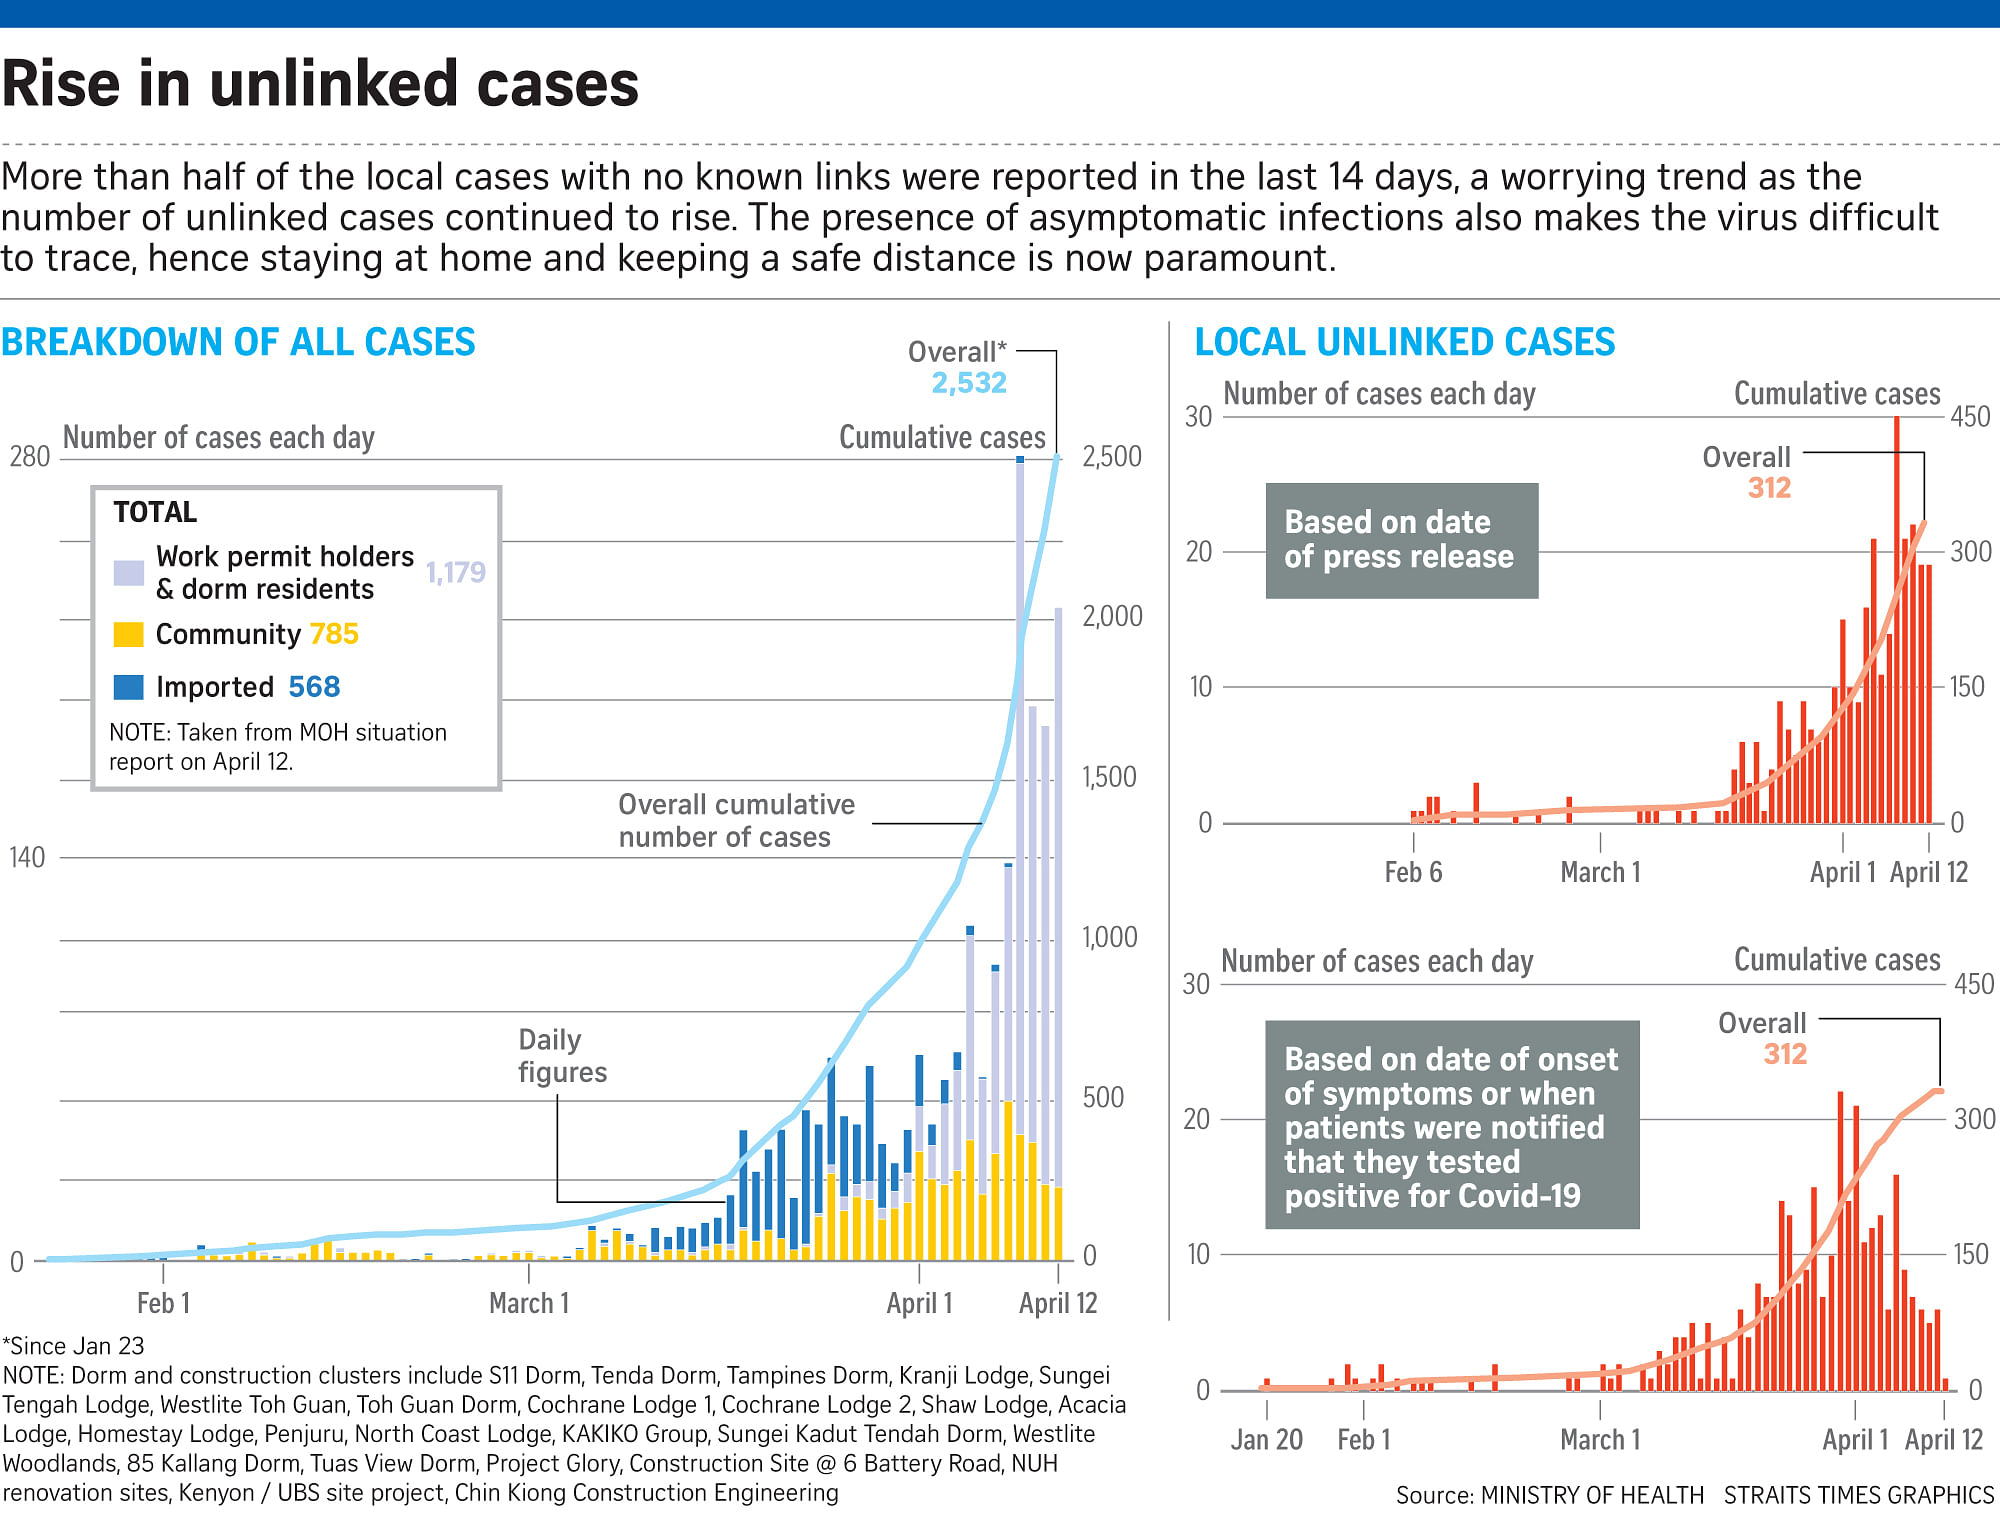 Coronavirus Rising Number Of Local Unlinked Cases In Past 14 Days Singapore News Top Stories The Straits Times